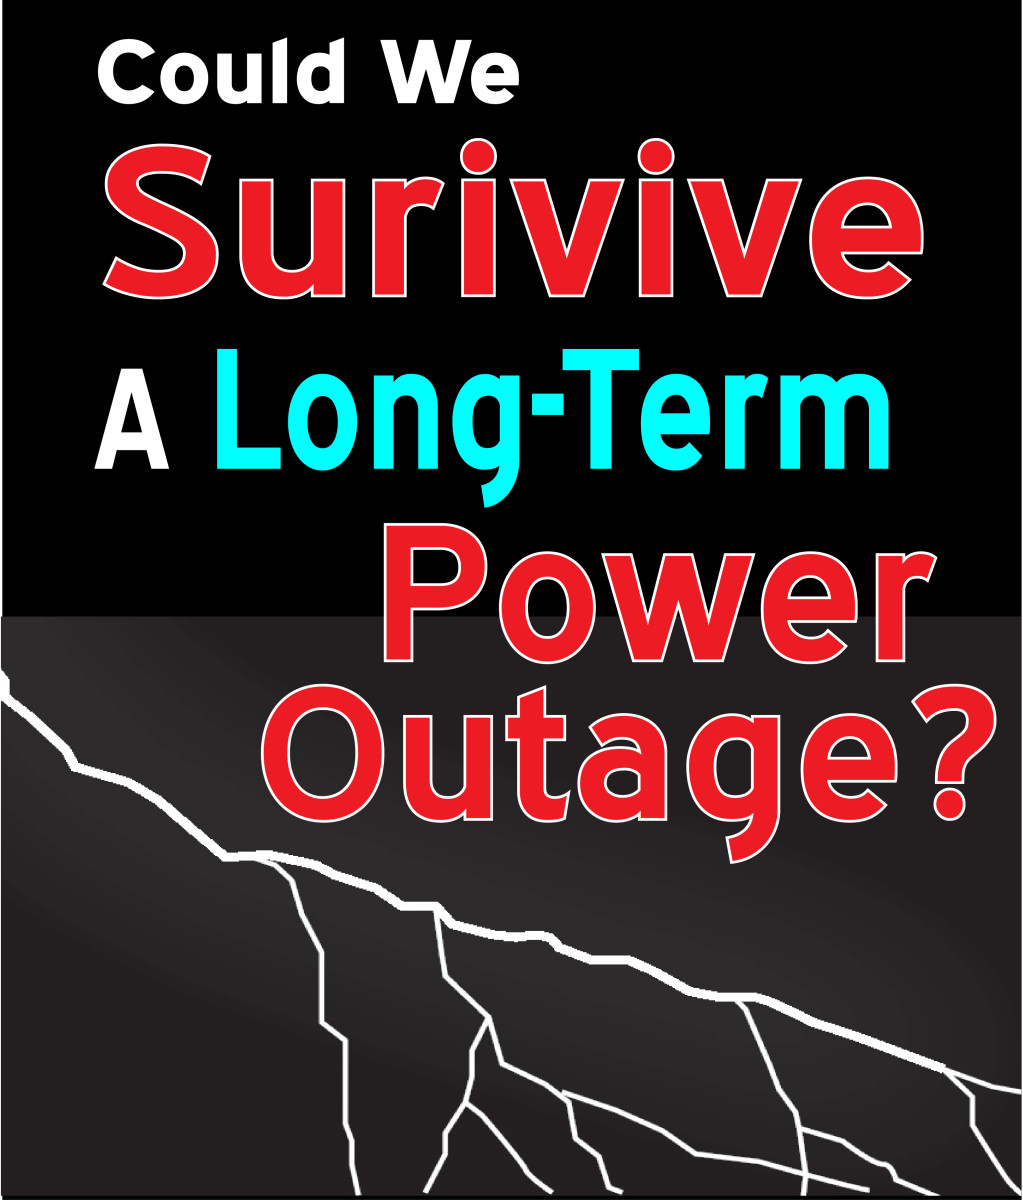 Could We Survive a Long-Term Power Outage?